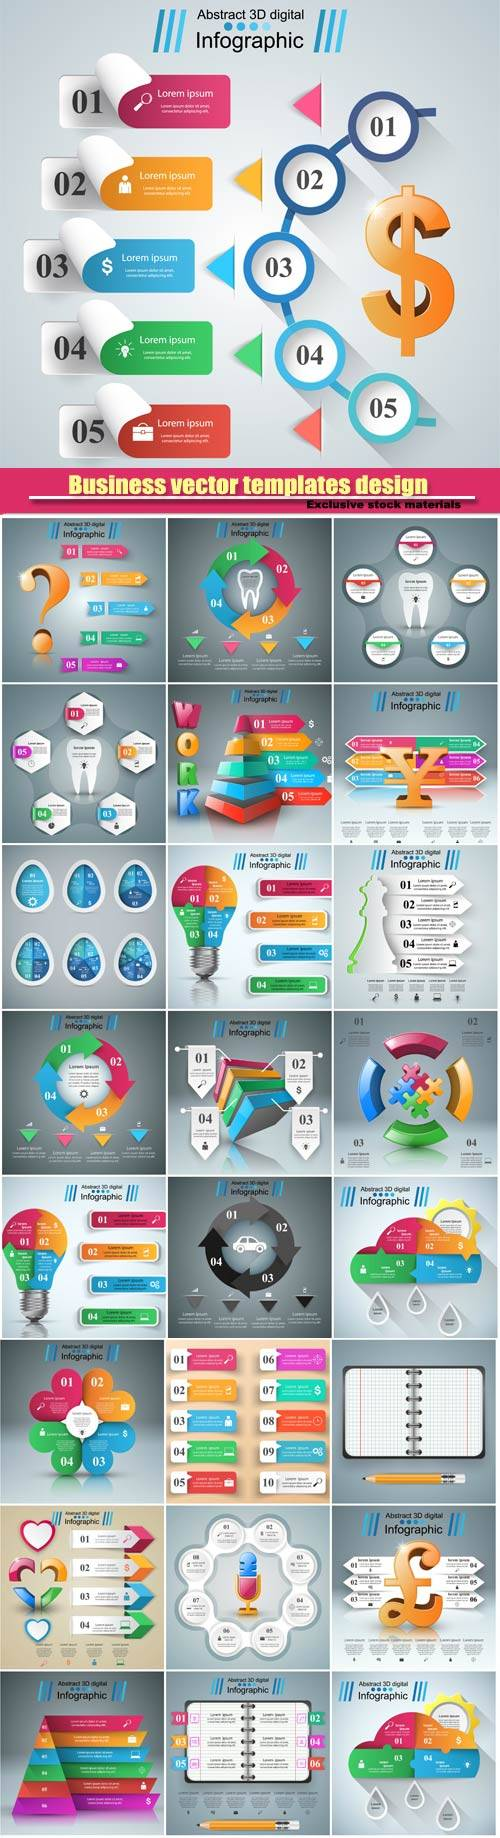 3D business infographic vector design